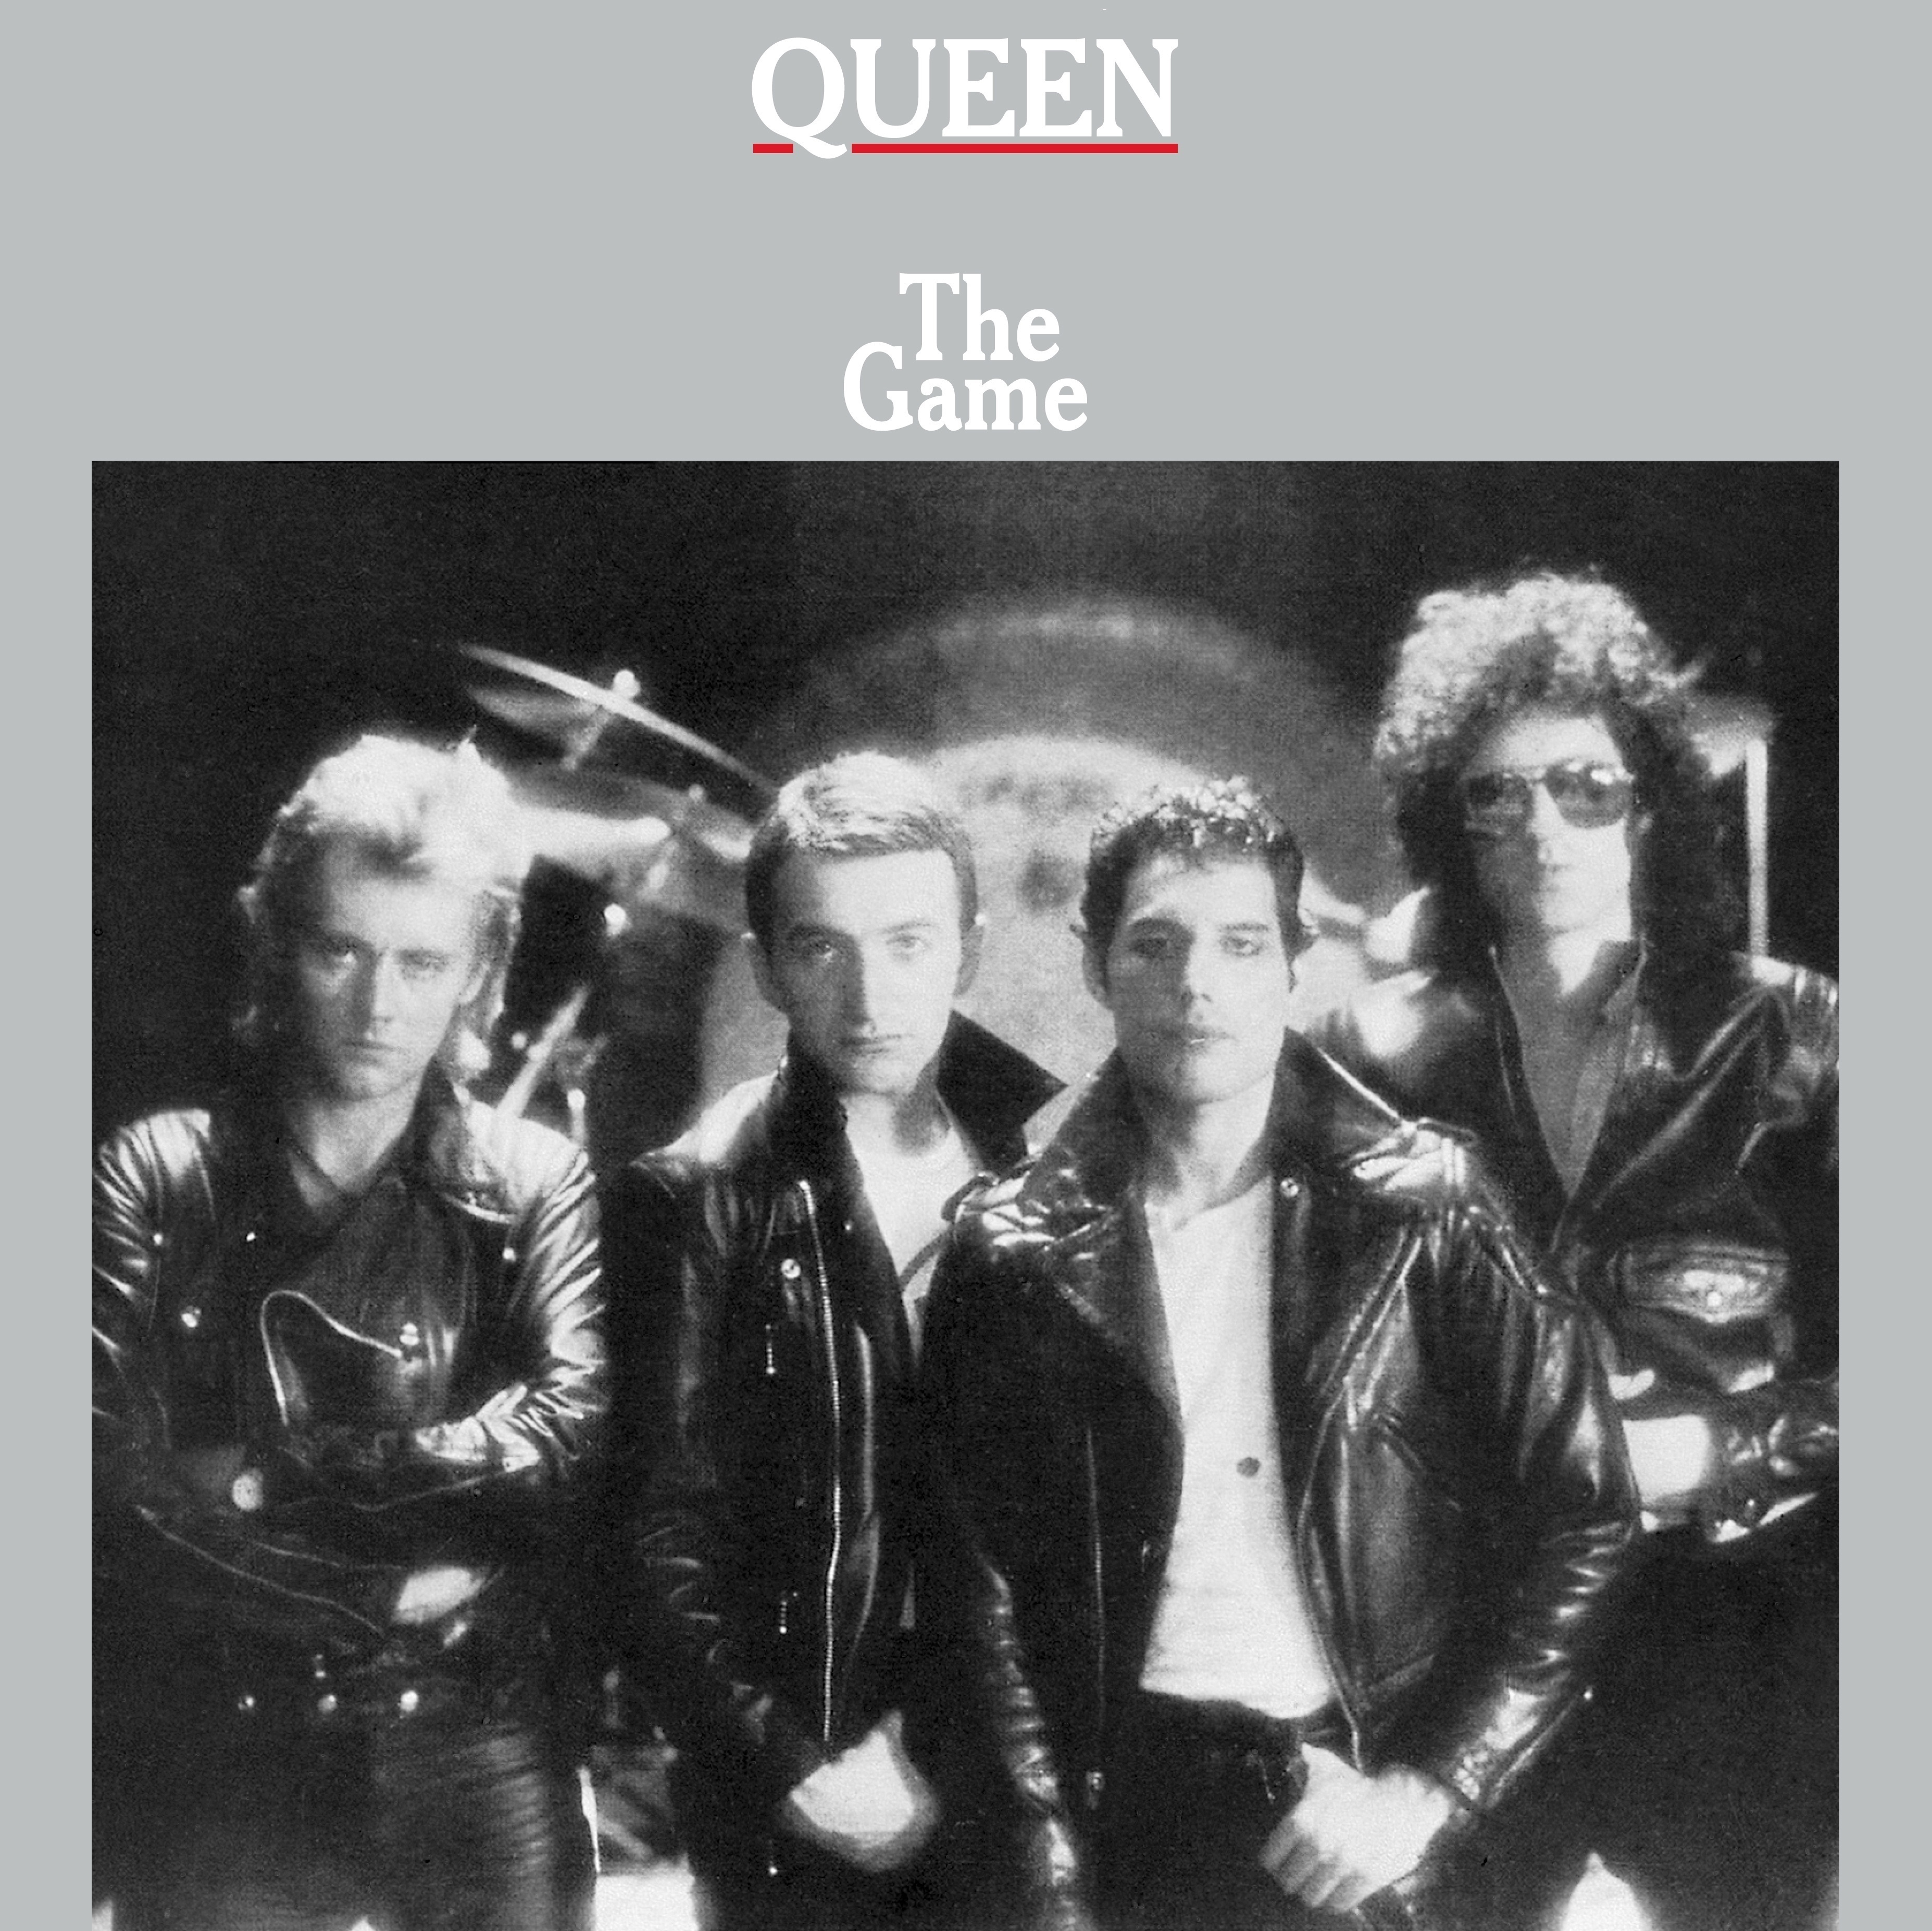 queen_the_game_1980.jpg